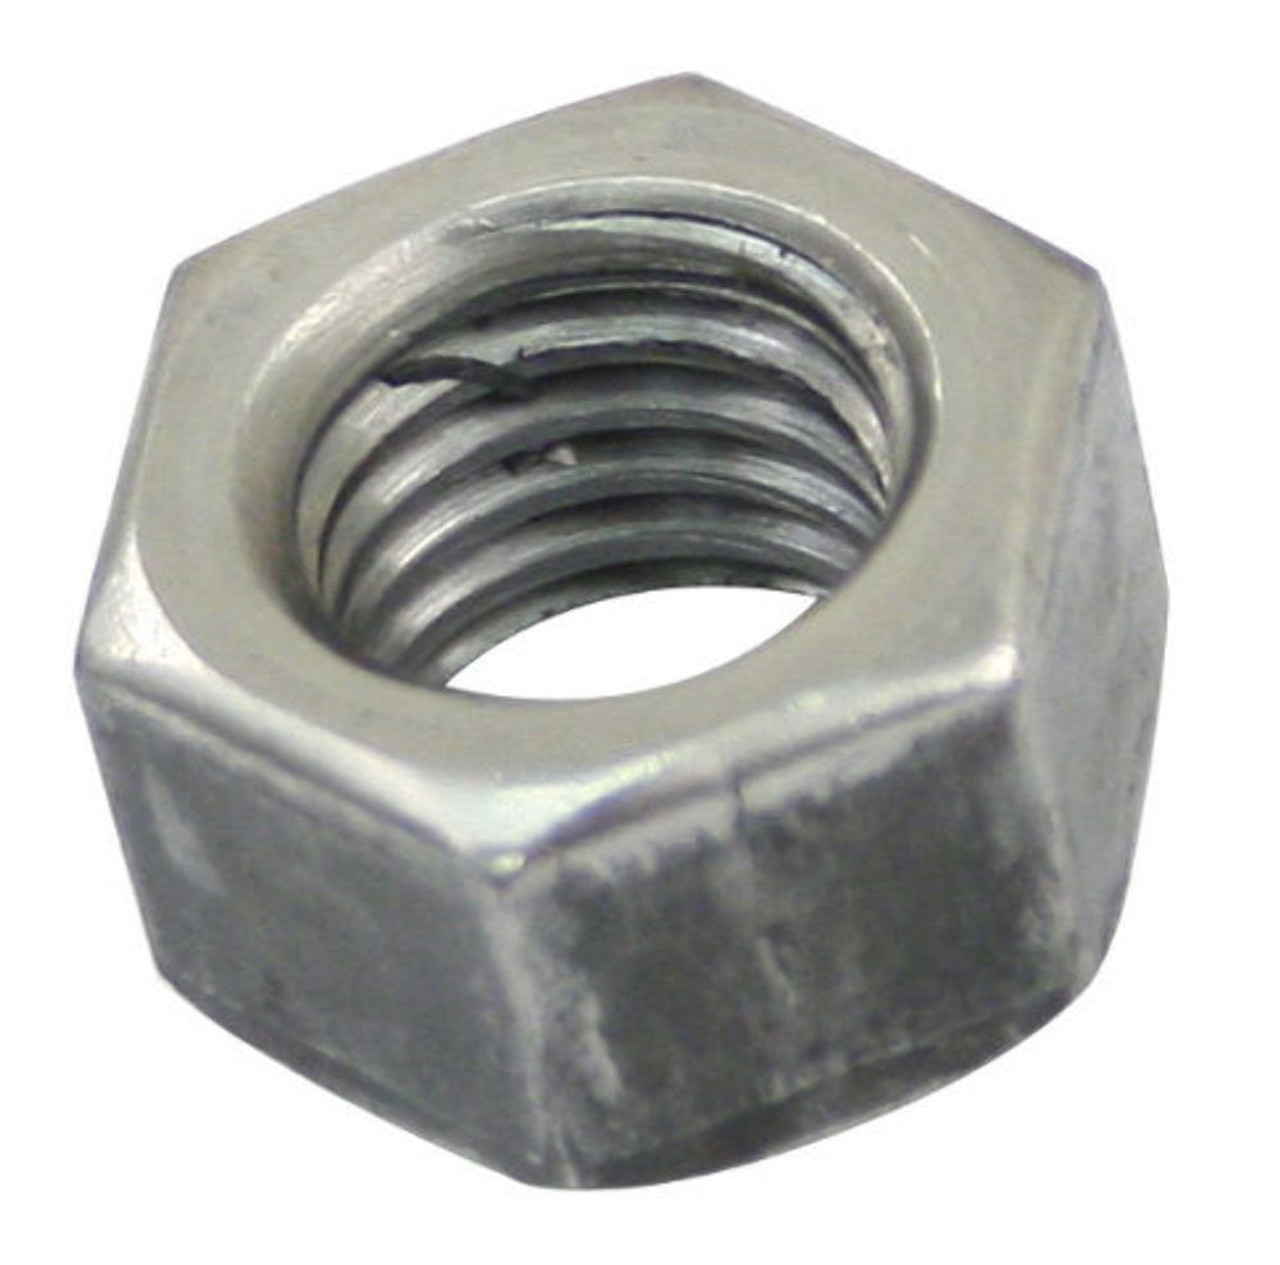 VW Beetle Cylinder Head Hex Nut 10mm kit (16) for Air Cooled Engines  98-0143-B